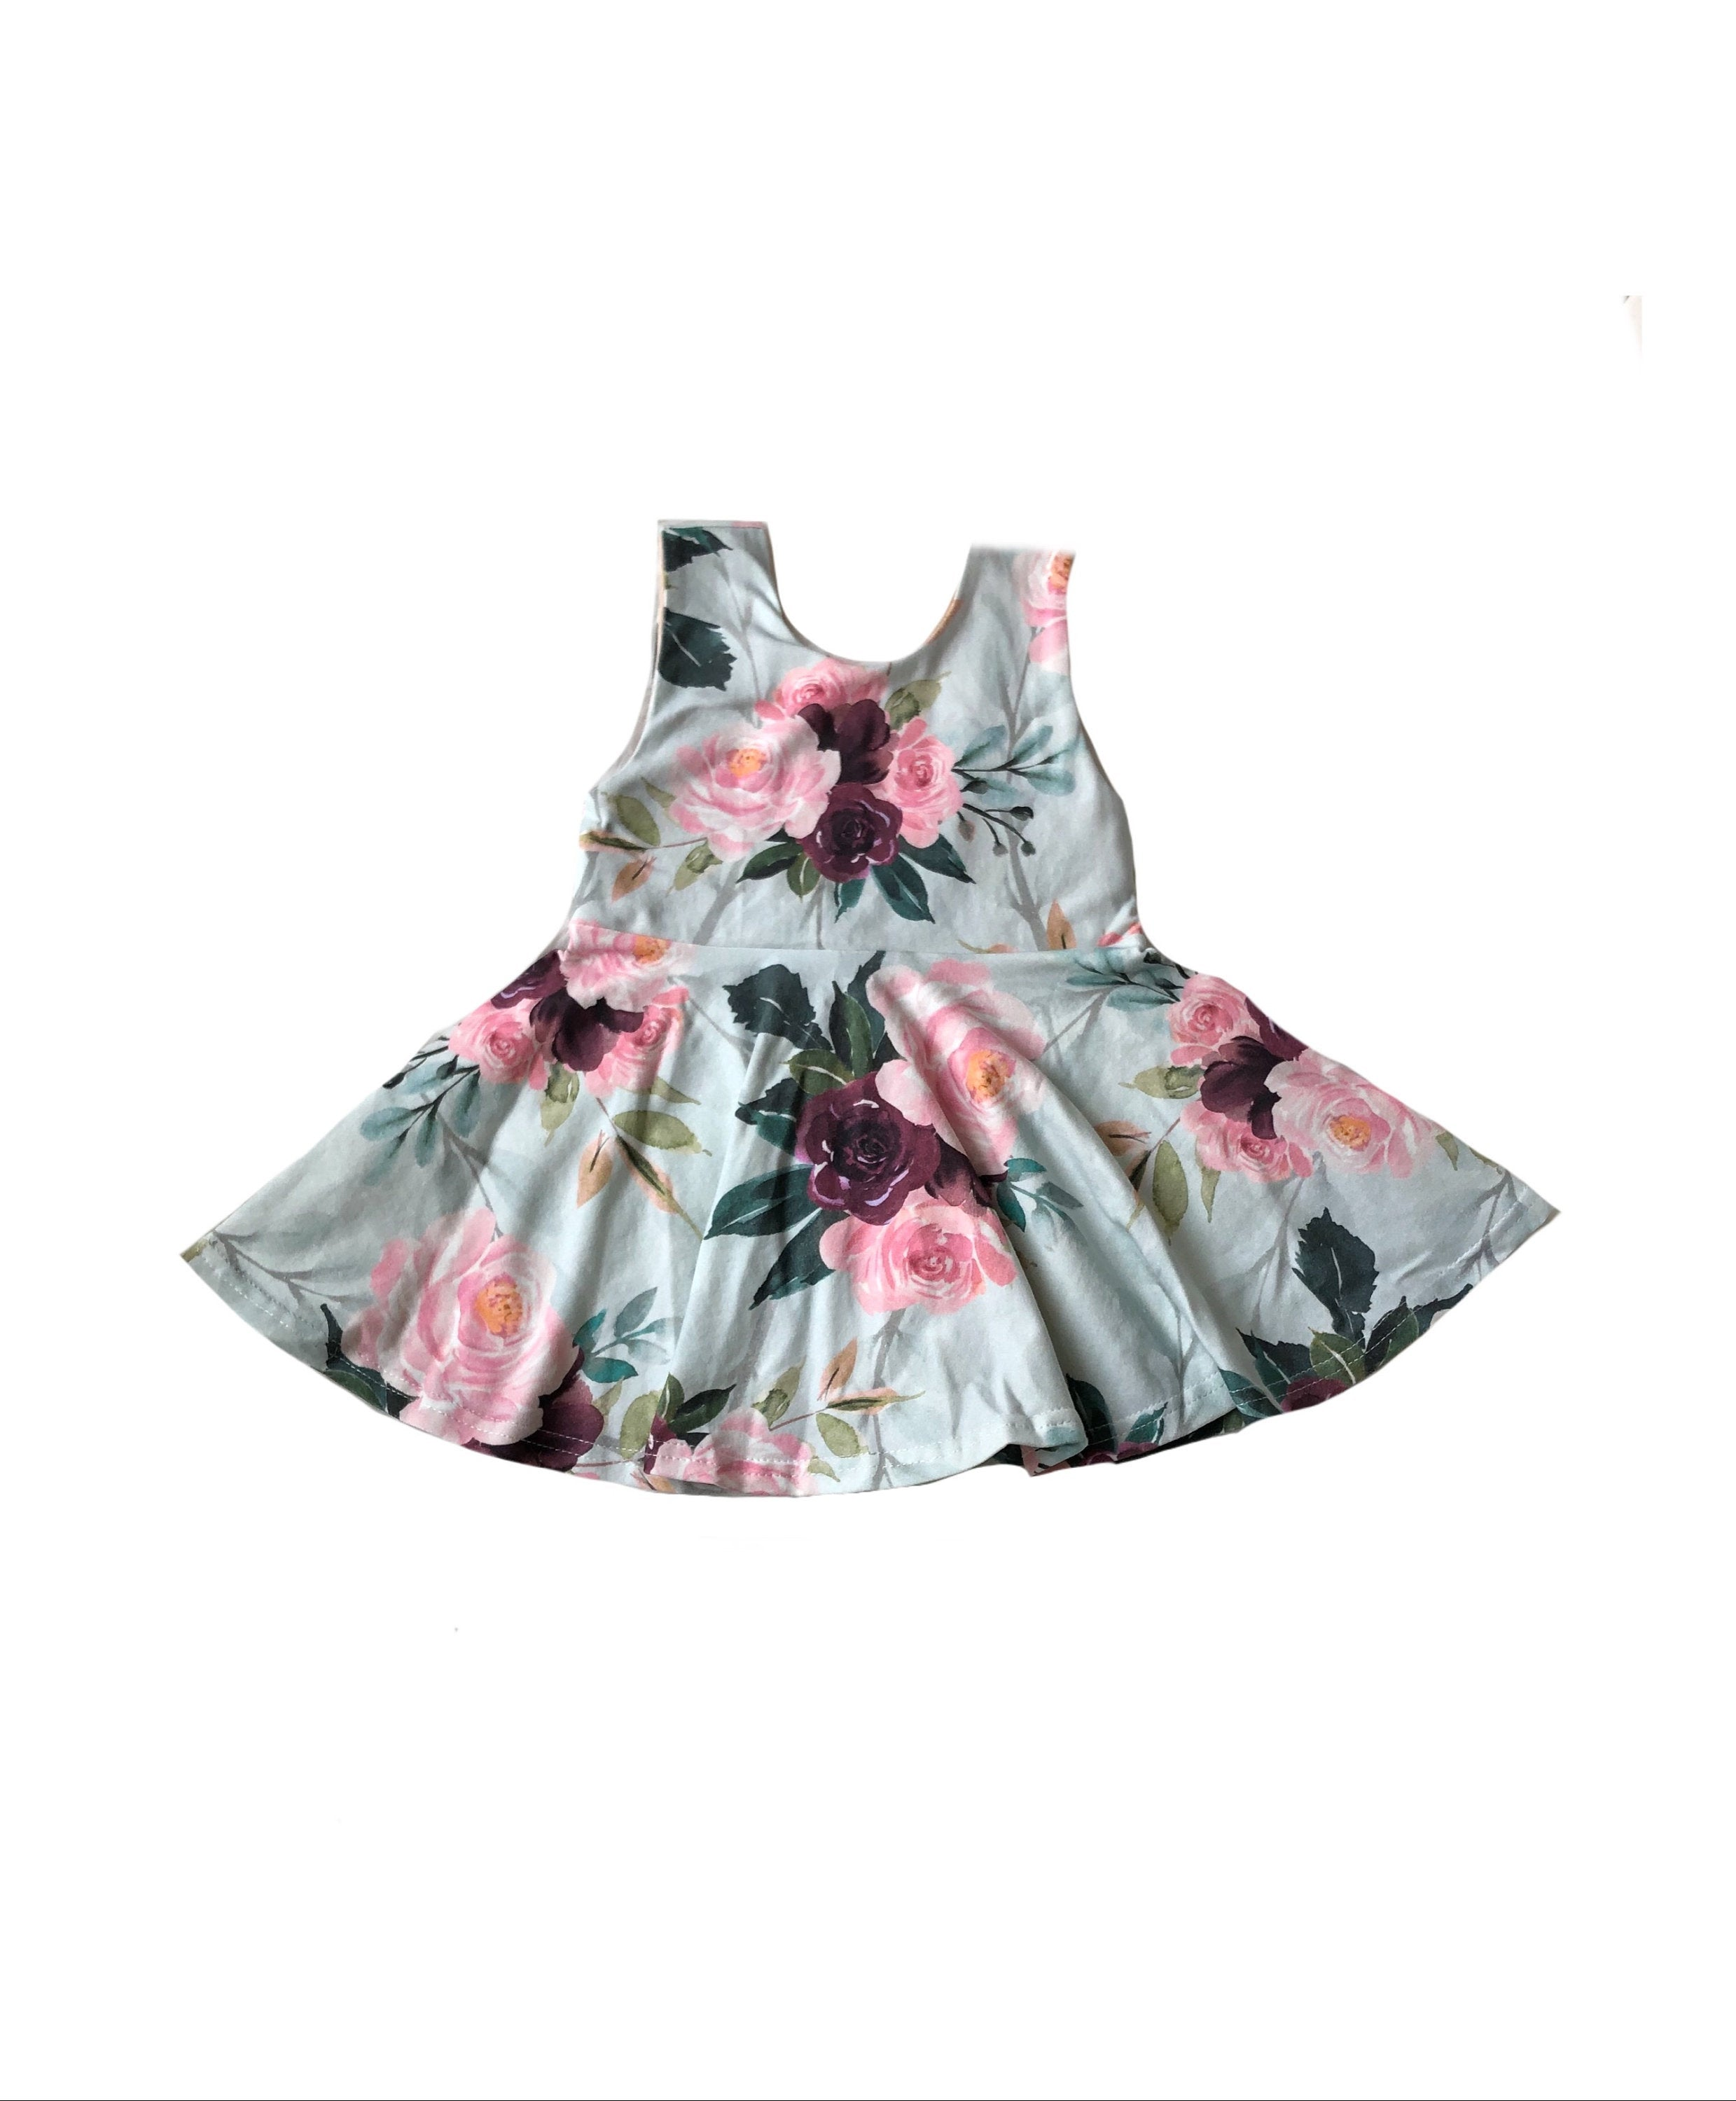 Summer Floral Scoop Back Tank Top Peplum- Girls Blue Maroon Pink Handmade Toddler Twirl Top - Kids Fit & Flare Shirt -Sleeveless Sister Baby